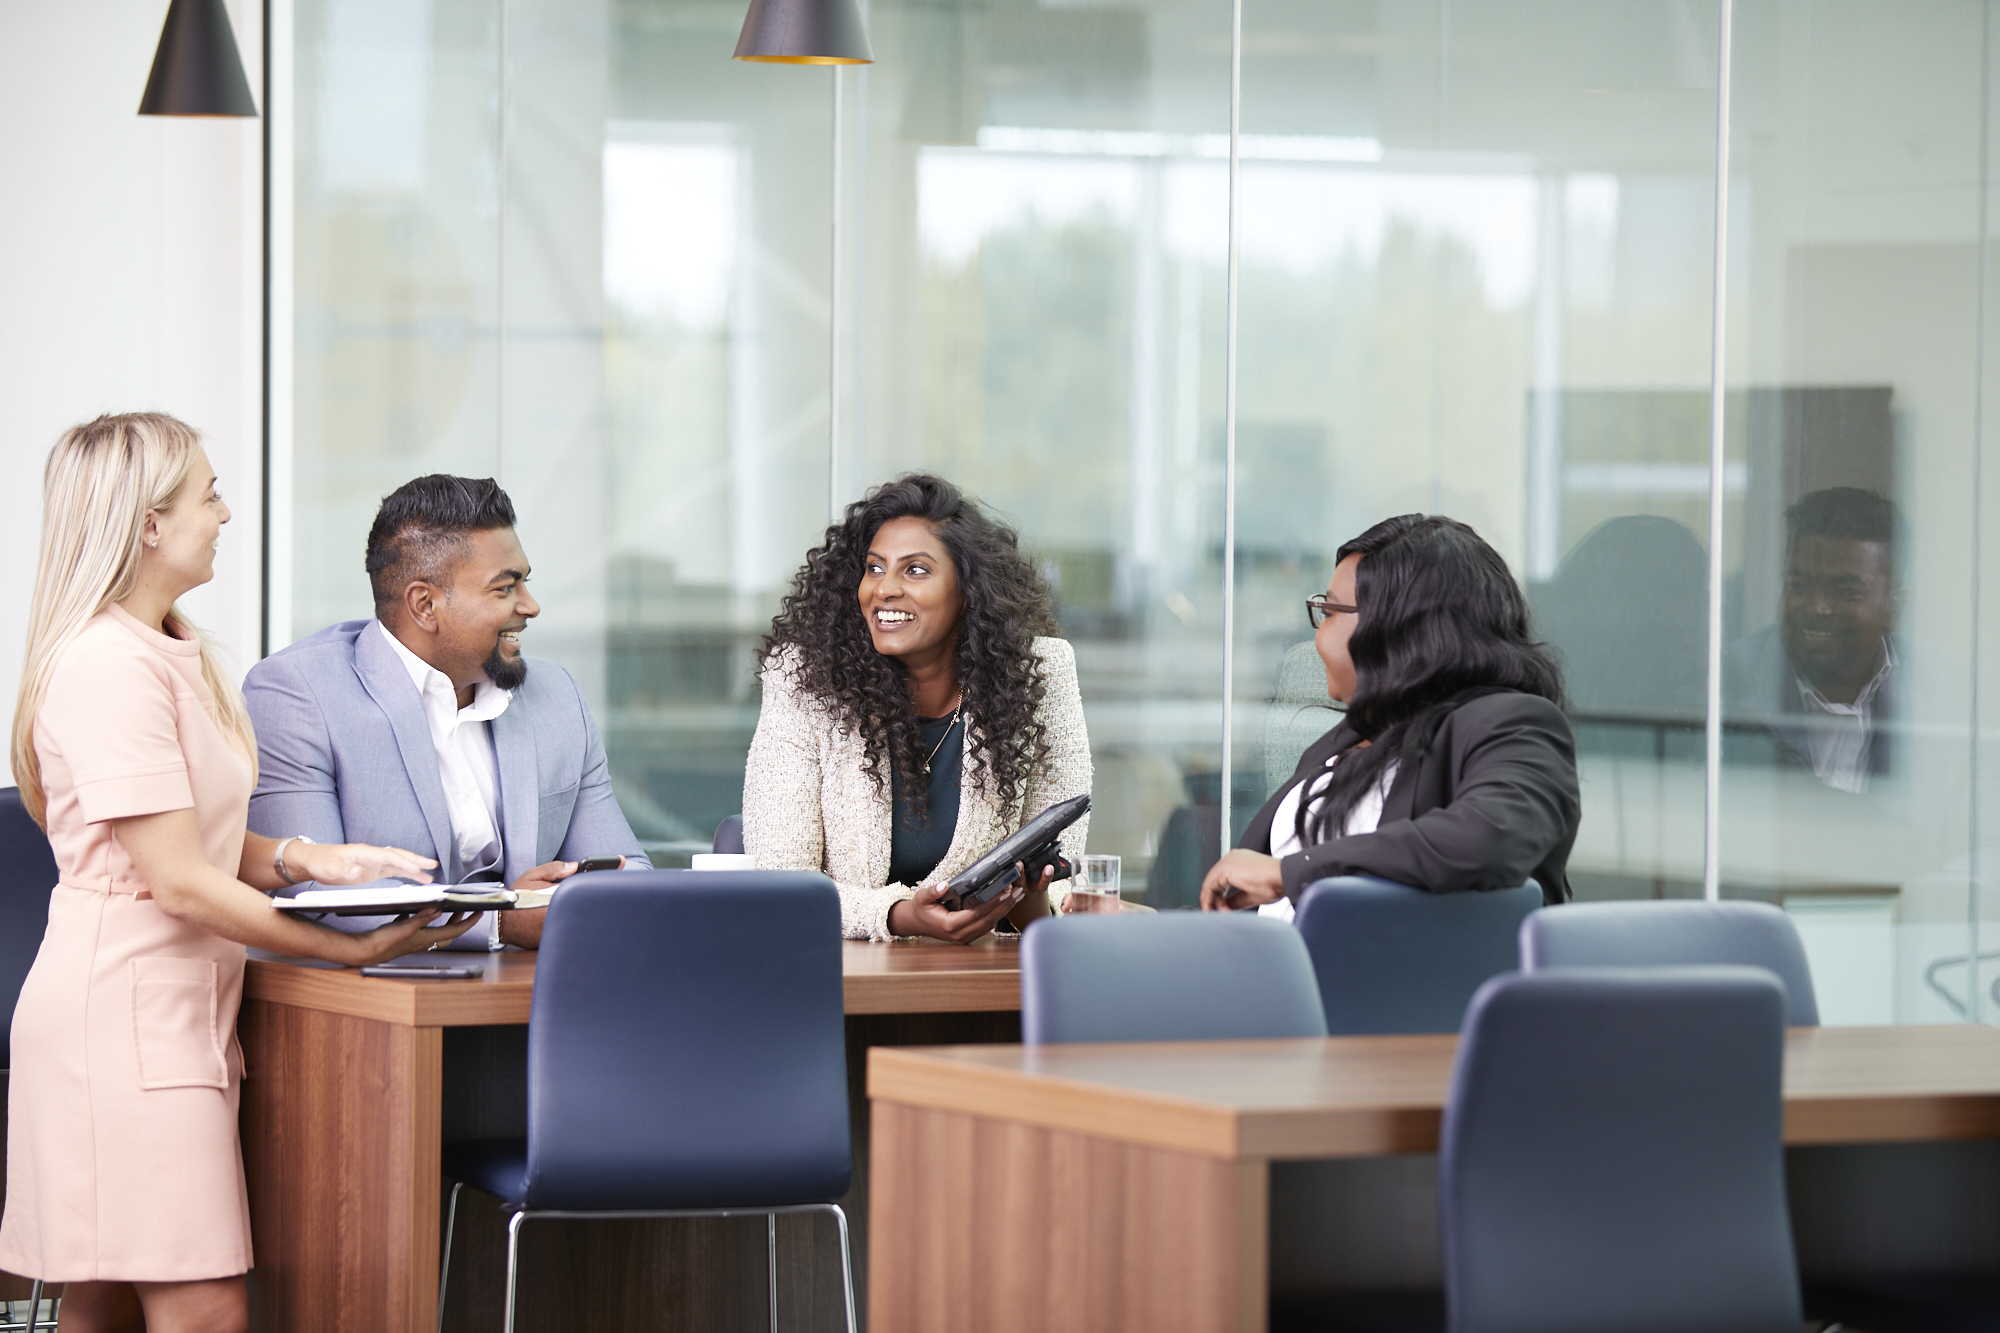 Attending an assessment centre? Read these useful tips